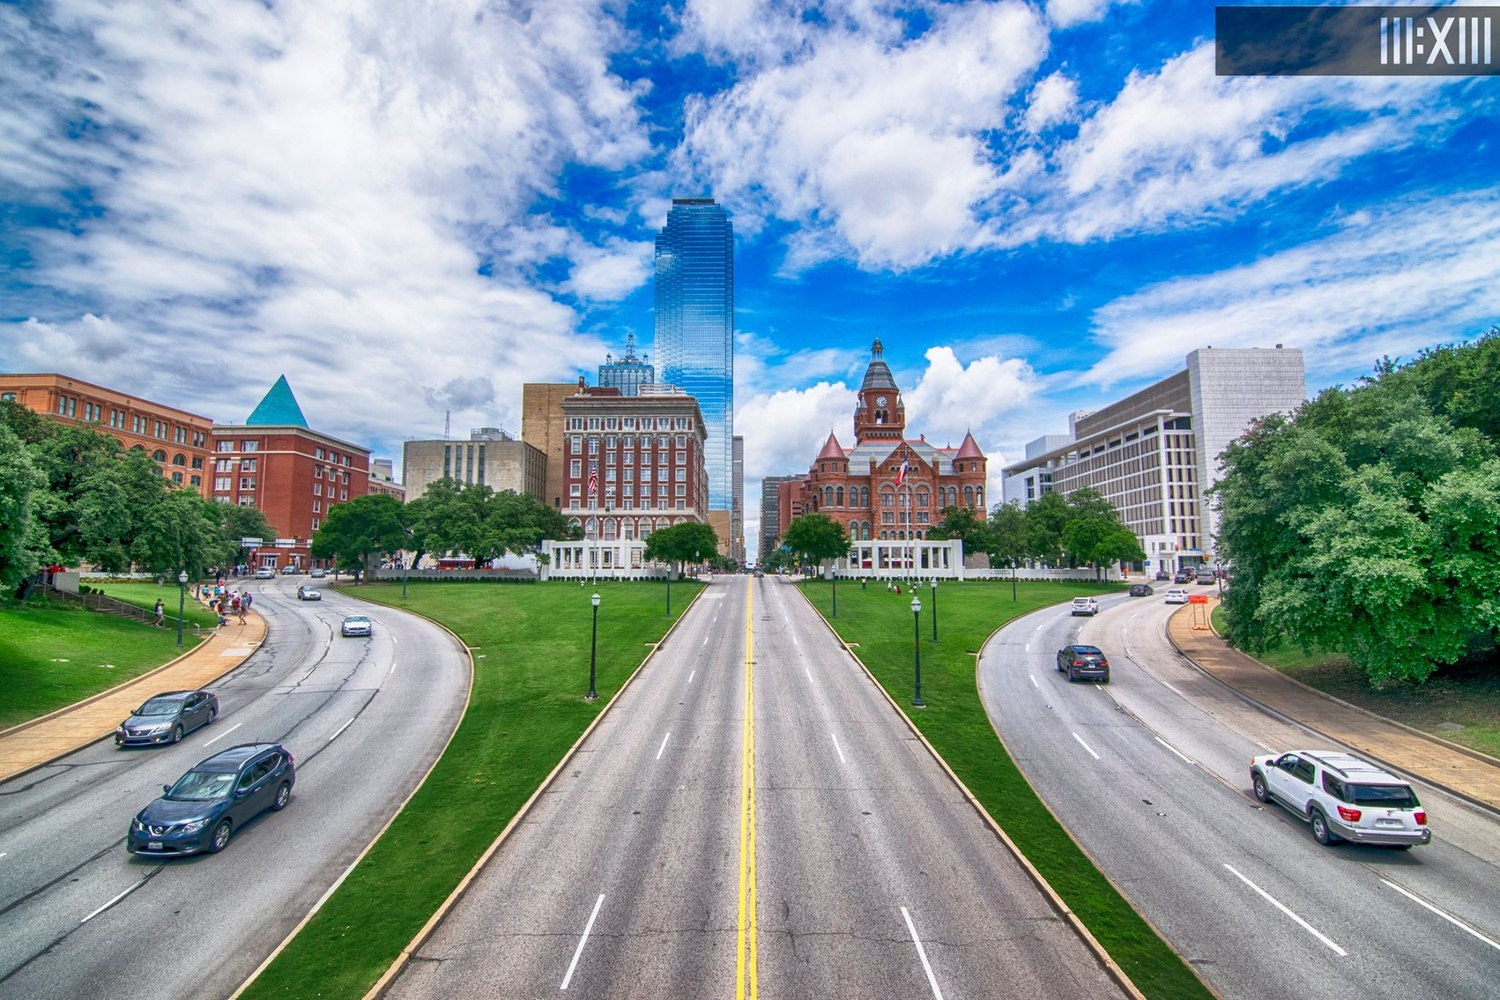 Dealey Plaza by Brittany Williams